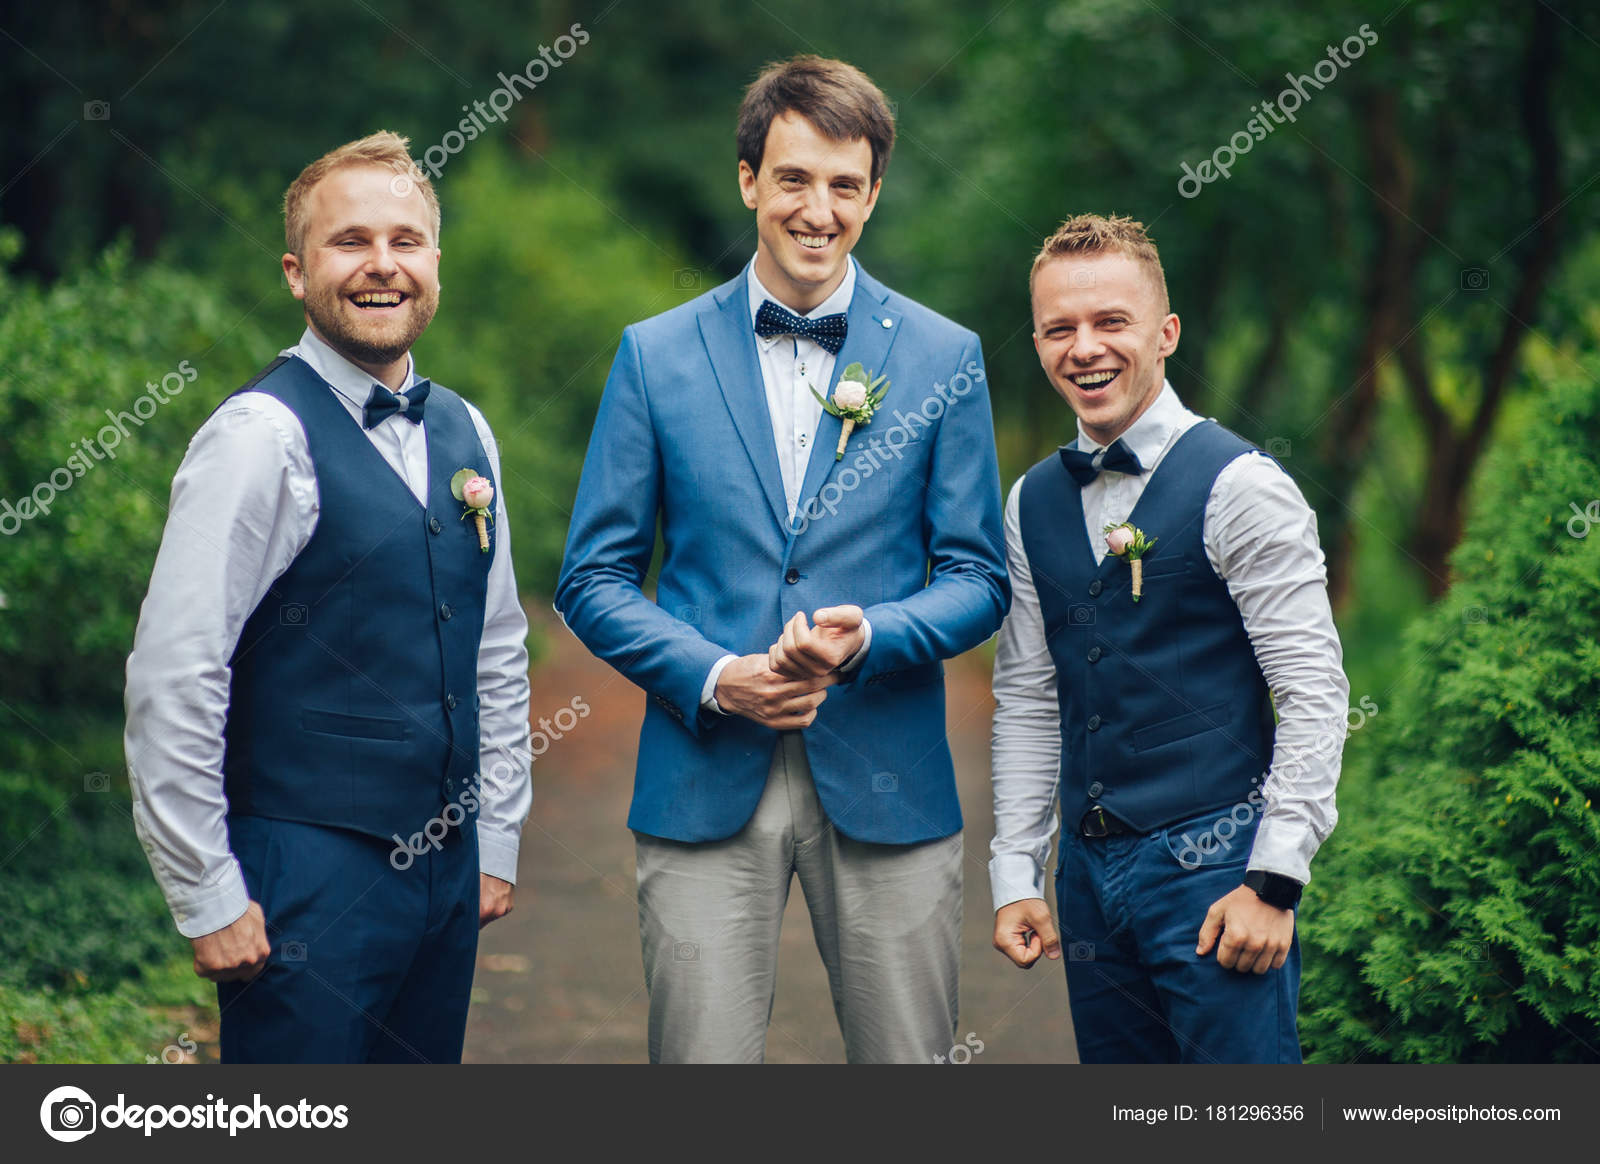 Stylish Groomsmen Groom Suits Posing Camera Park — Stock Photo ...